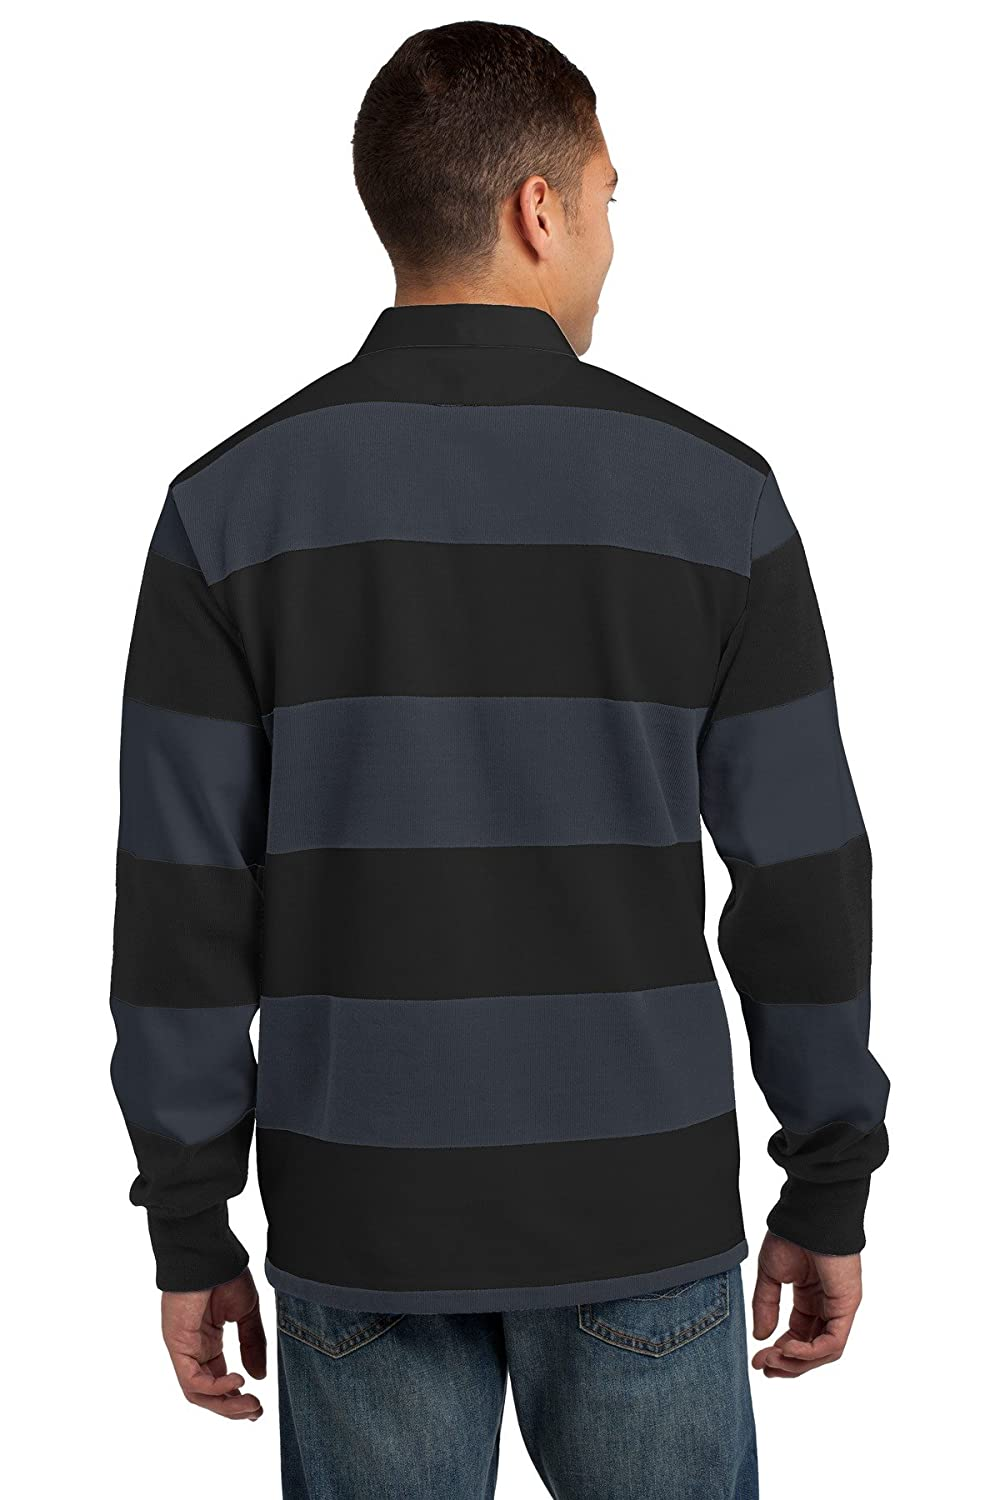 e6be001a9e0 Sport-Tek Classic Long Sleeve Rugby Polo. ST301 at Amazon Men's Clothing  store: